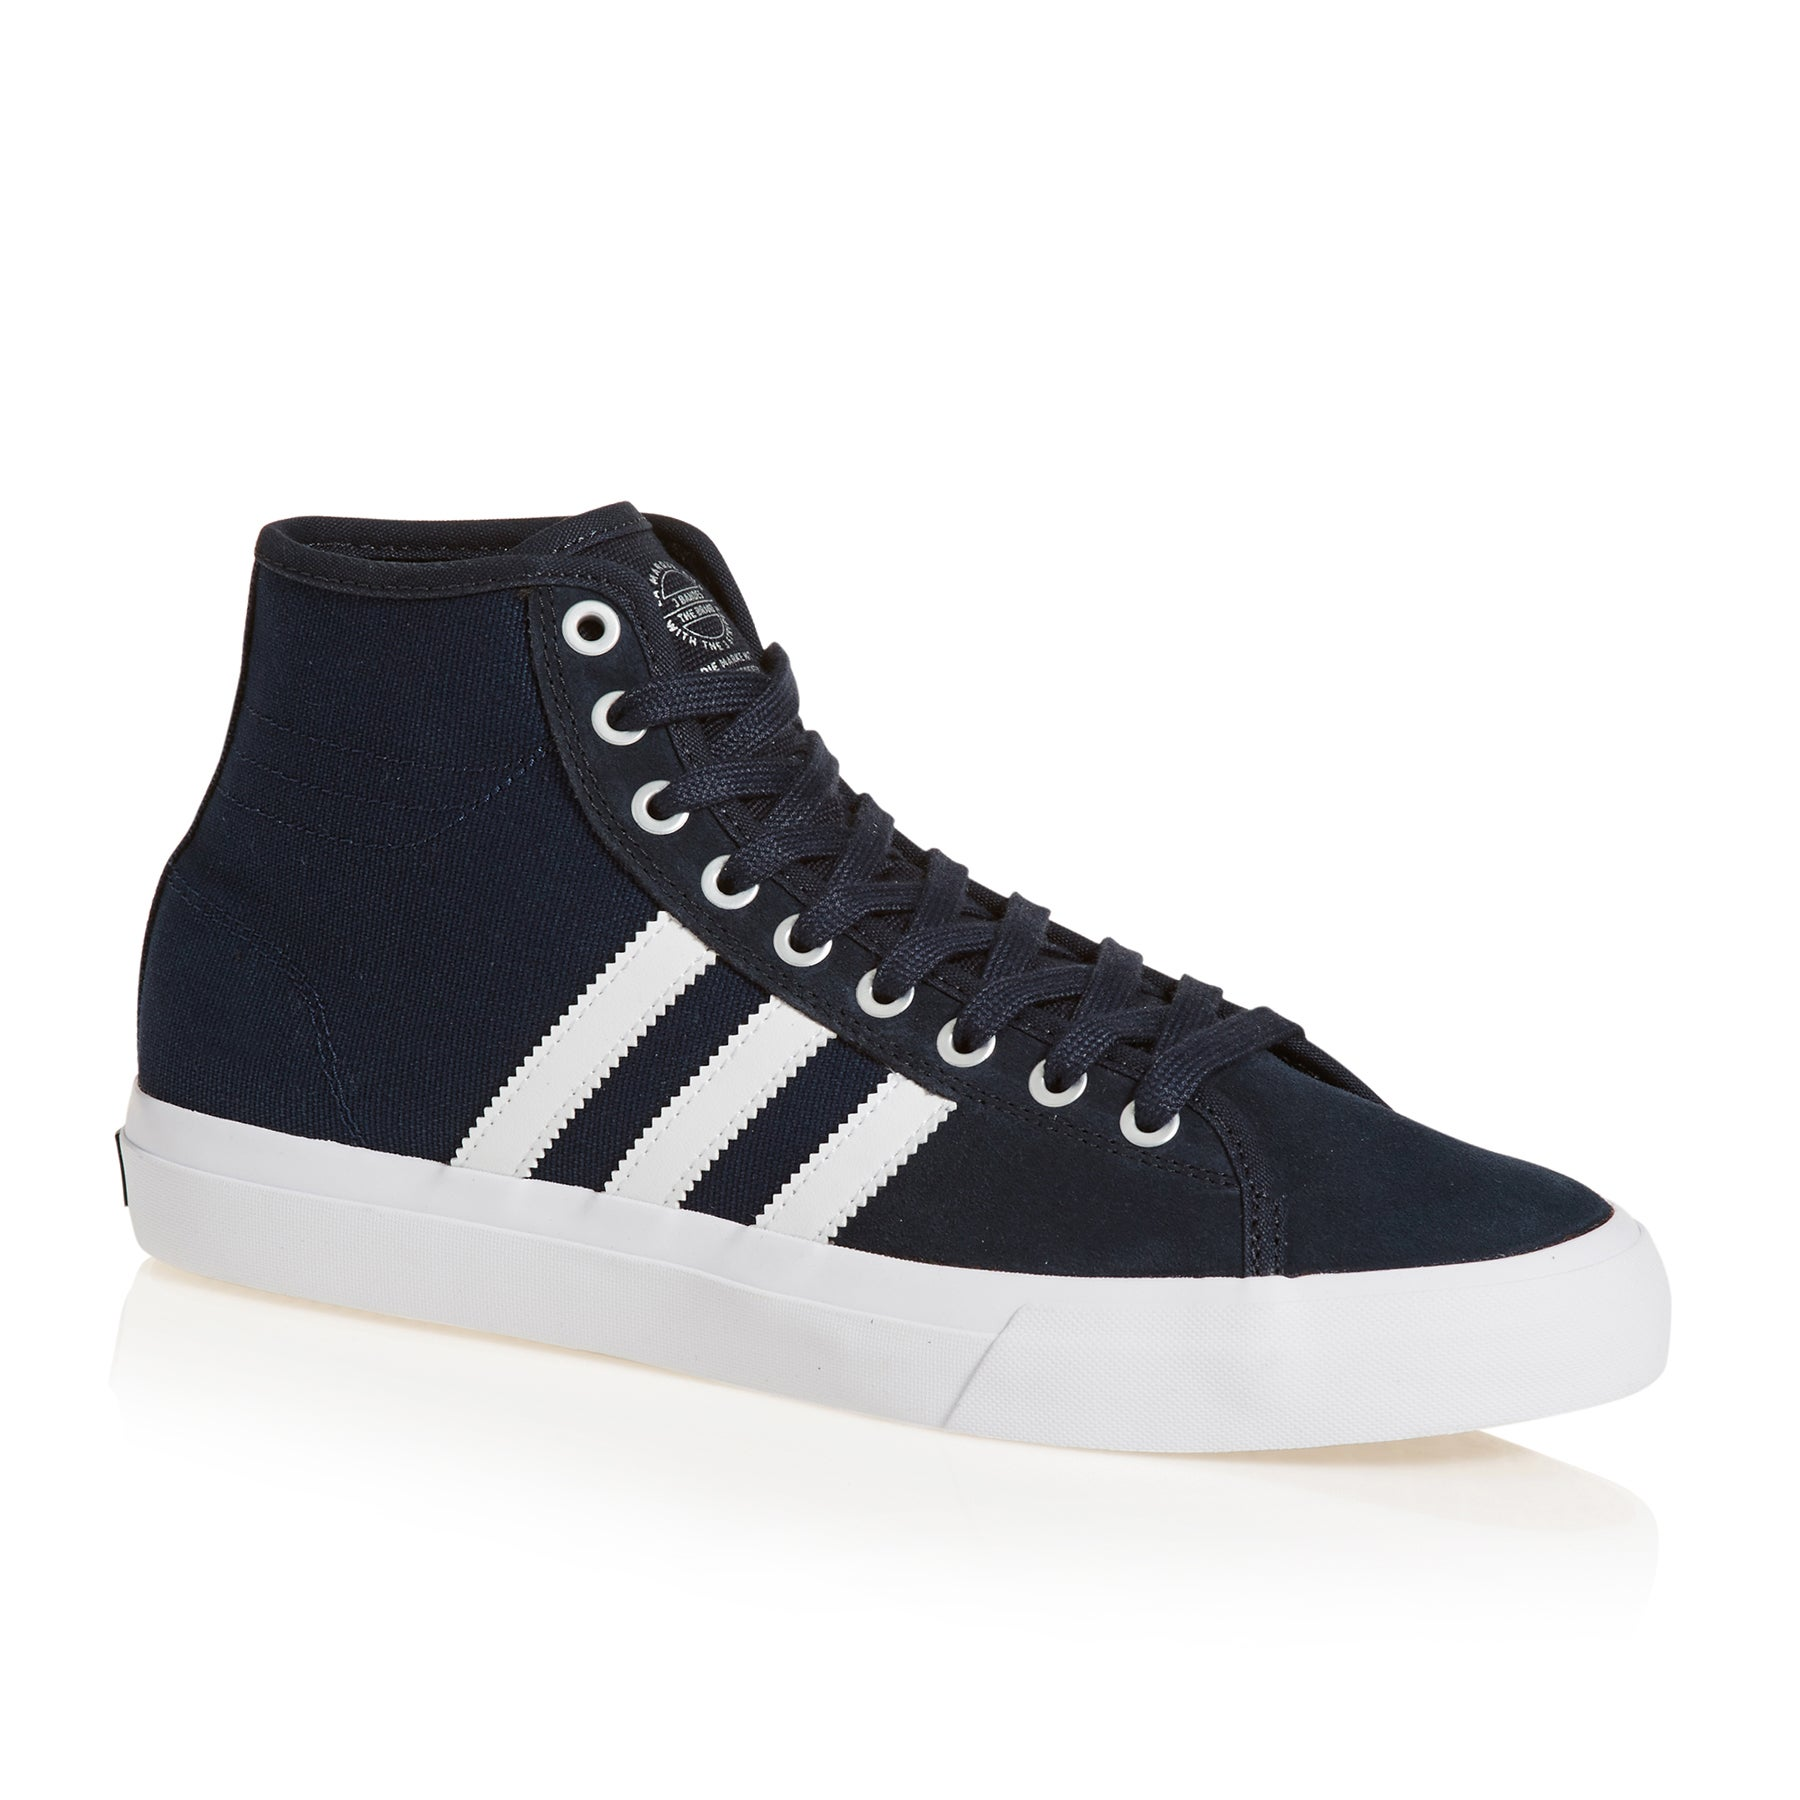 Adidas Matchcourt High Rx Shoes - Night Navy White